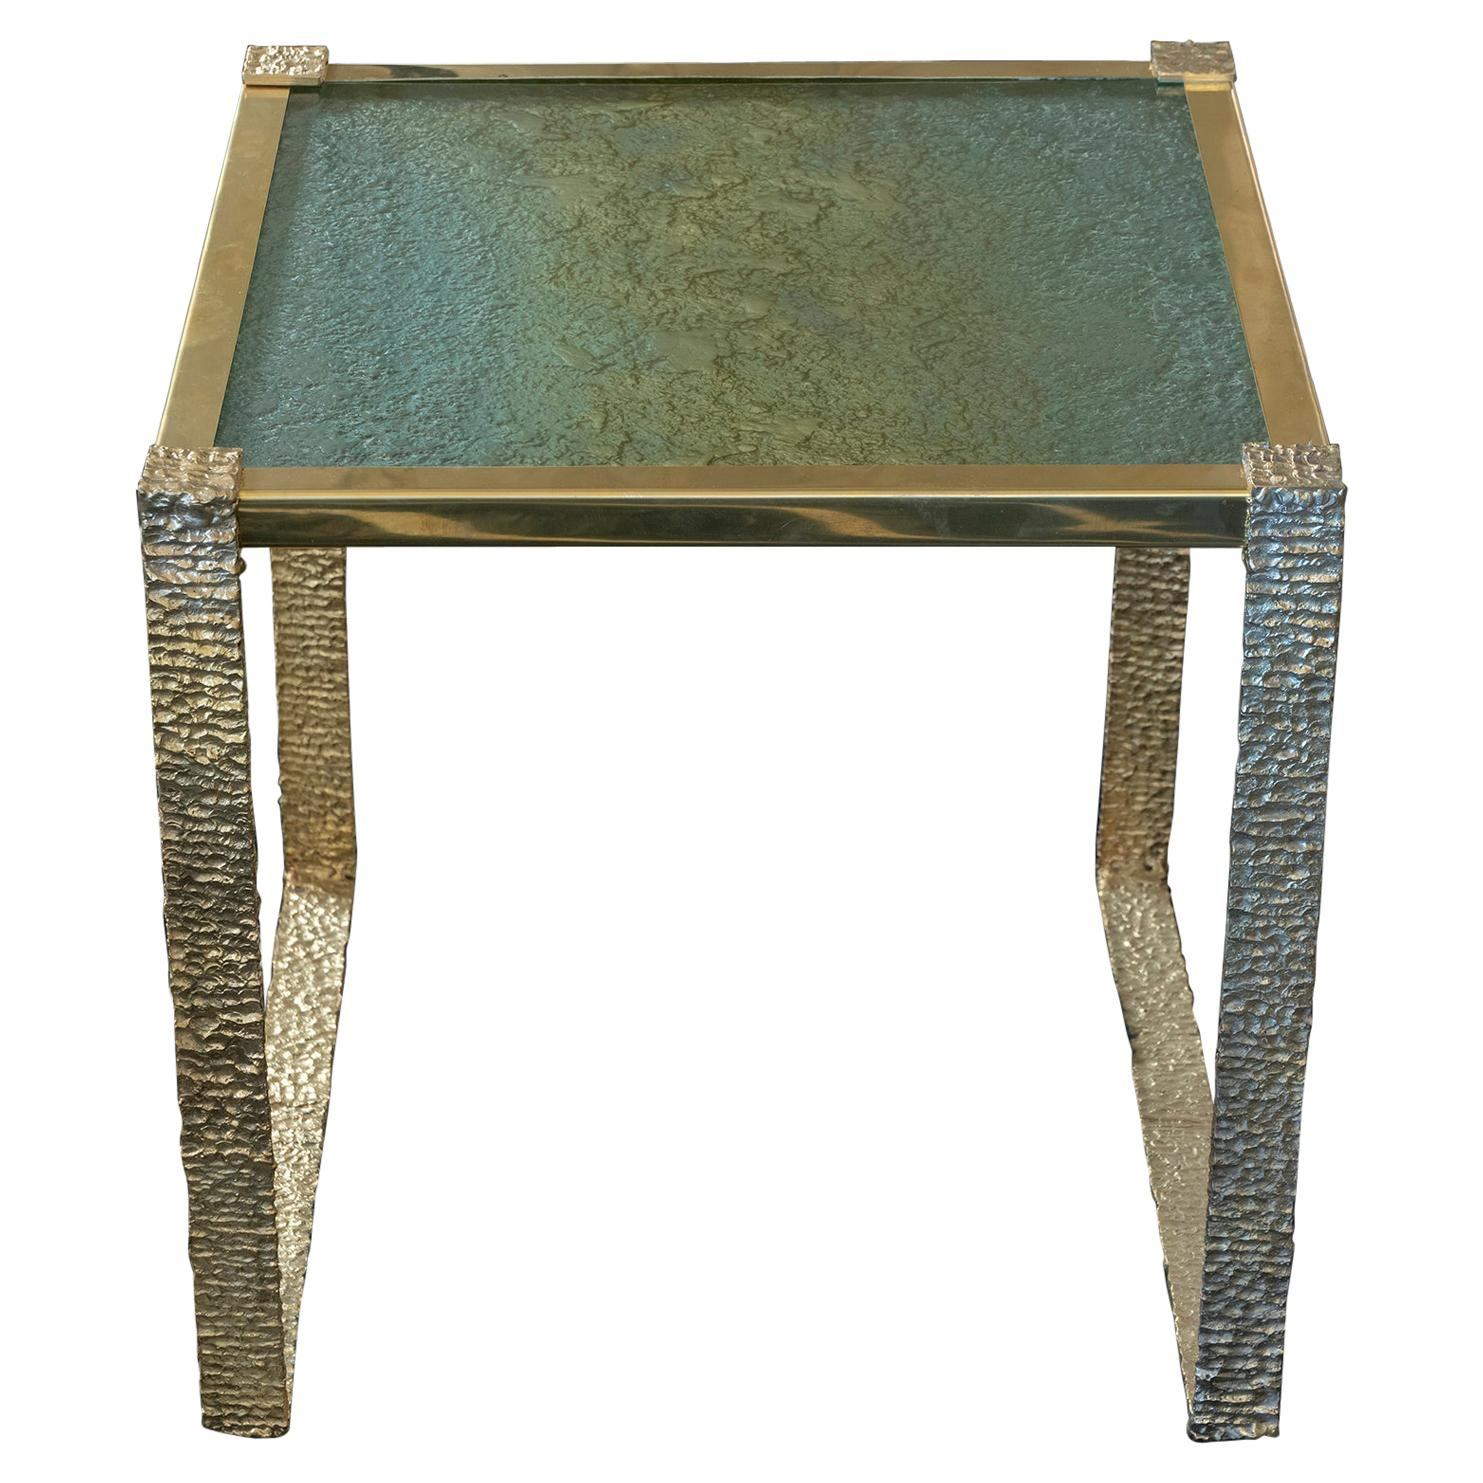 Flair Edition Contemporary Side Table, Brass Base and Art Glass Top, Italy, 2021